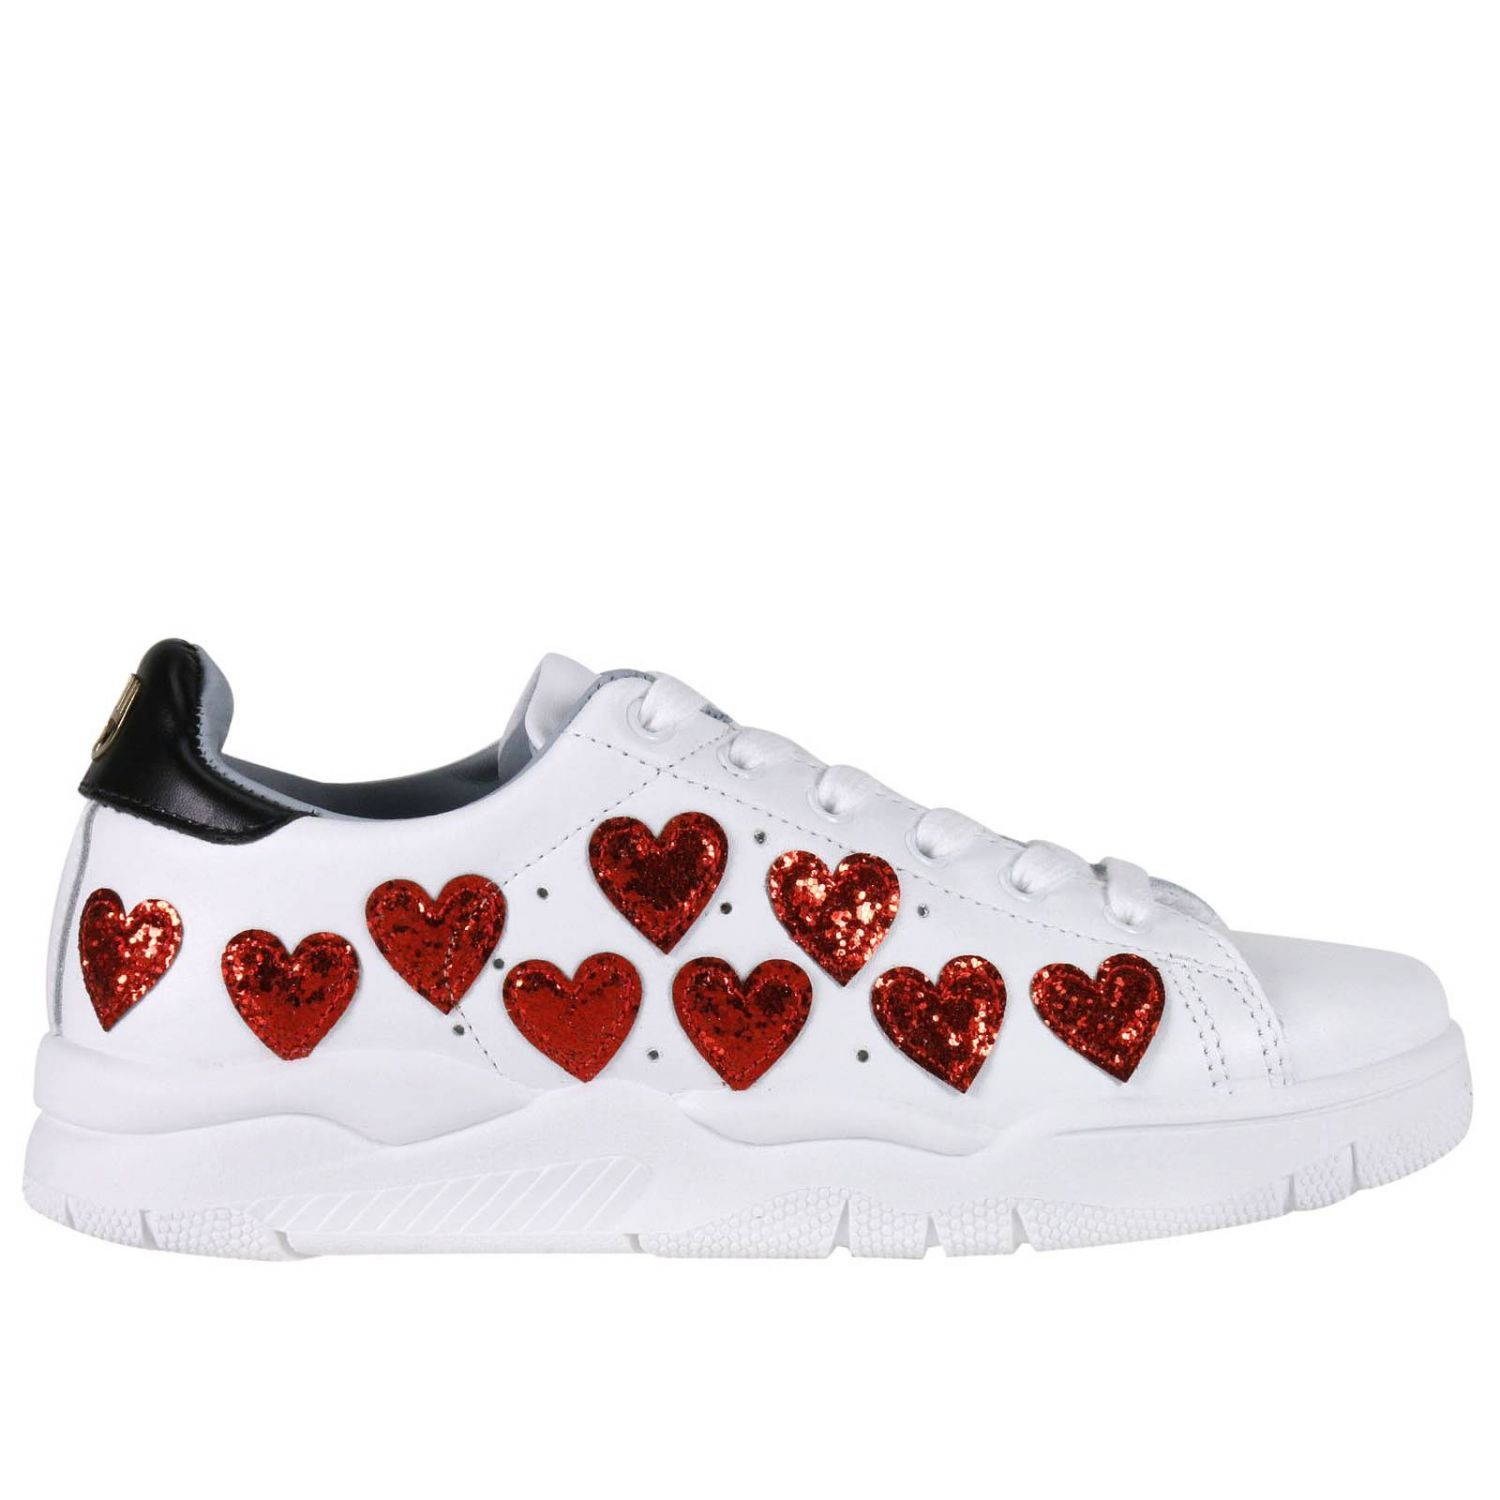 chiara ferragni sneakers shoes women chiara ferragni white women 39 s sneakers italist. Black Bedroom Furniture Sets. Home Design Ideas